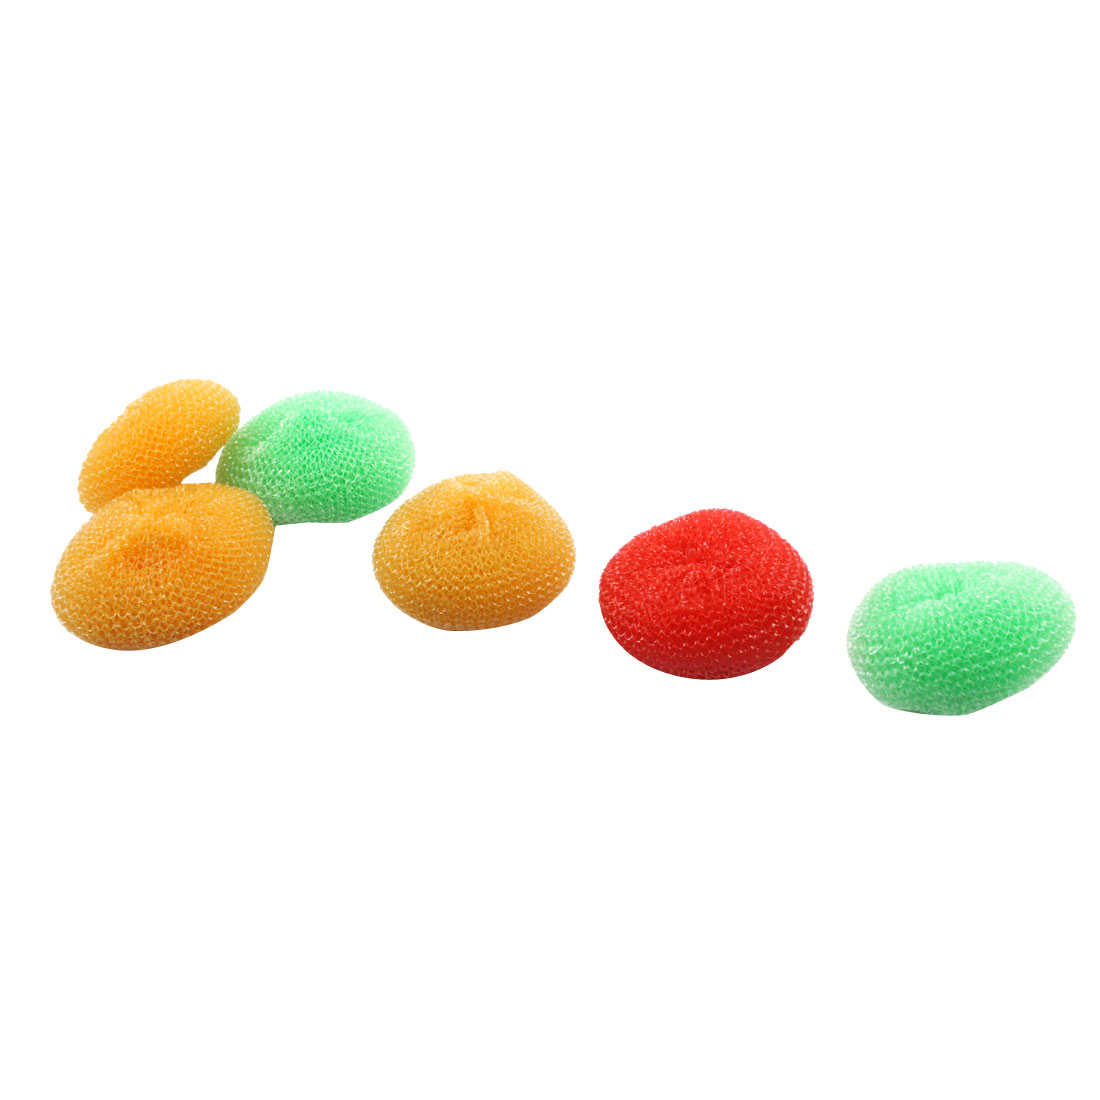 Kitchen Pot Bowl Dish Ball Mesh Scouring Cleaning Washing Scrubber Tricolor 6pcs